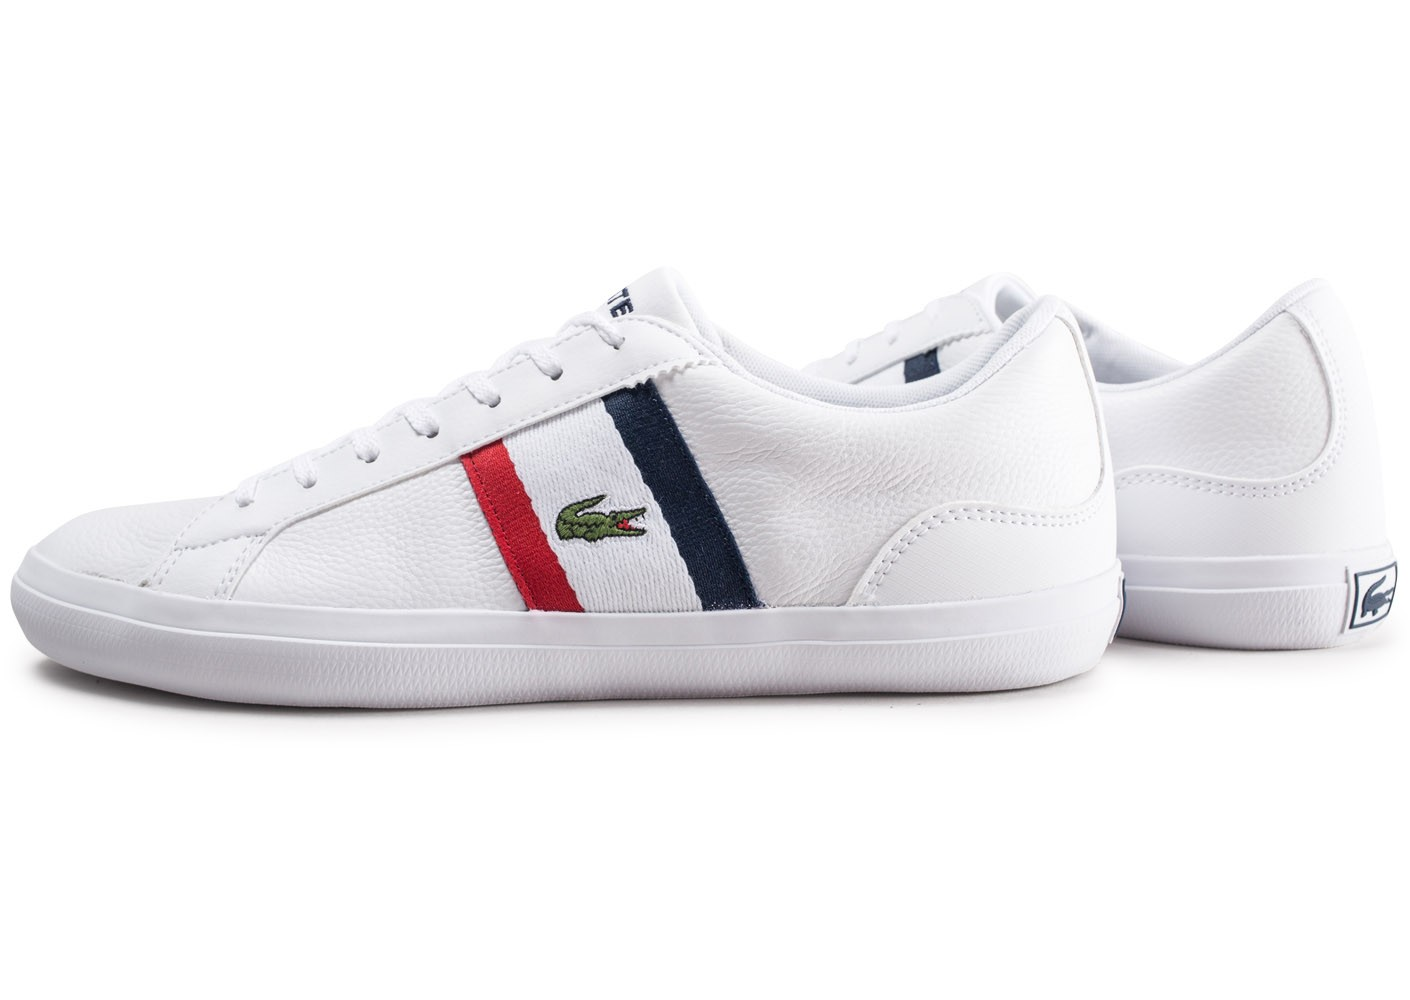 Lacoste Lerond 119 blanche Chaussures Baskets homme